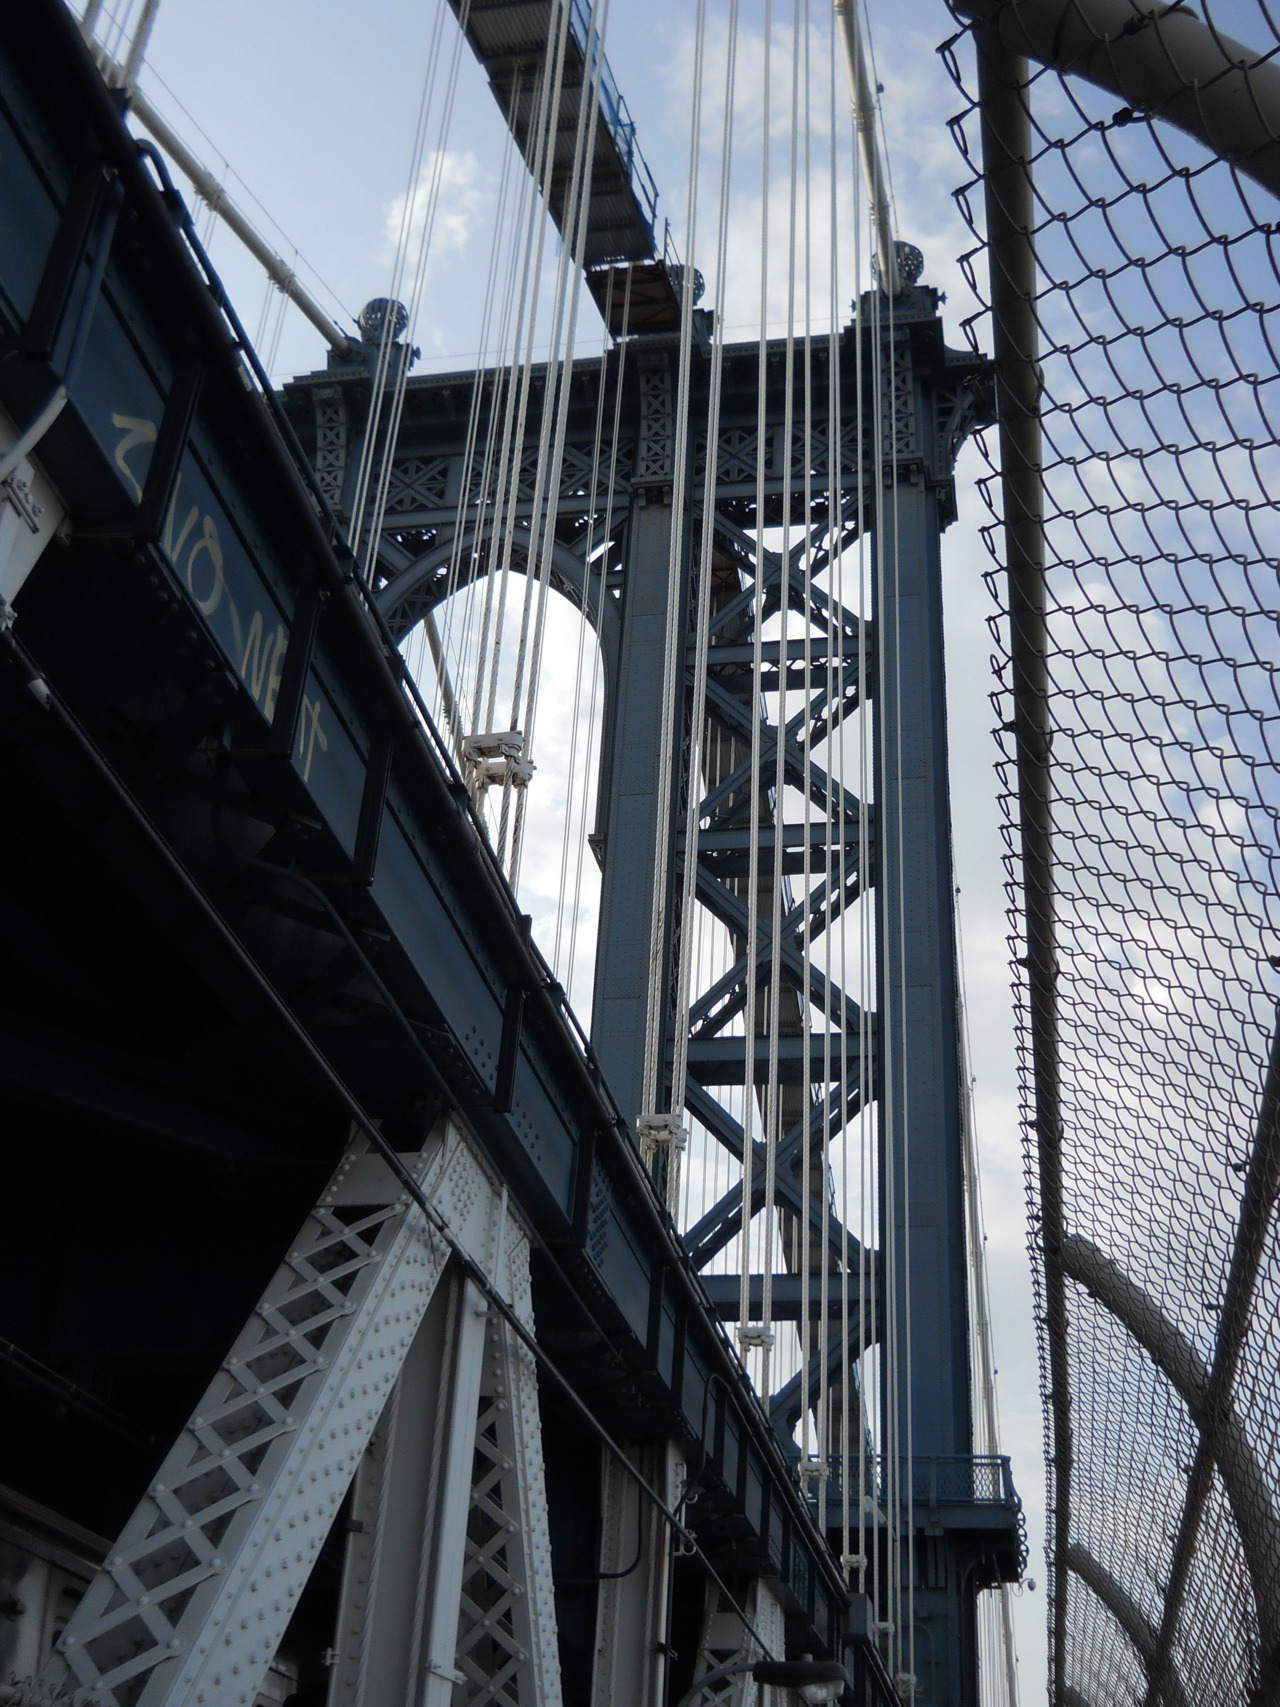 hotphotography:  the Manhattan bridge by jim ramirez